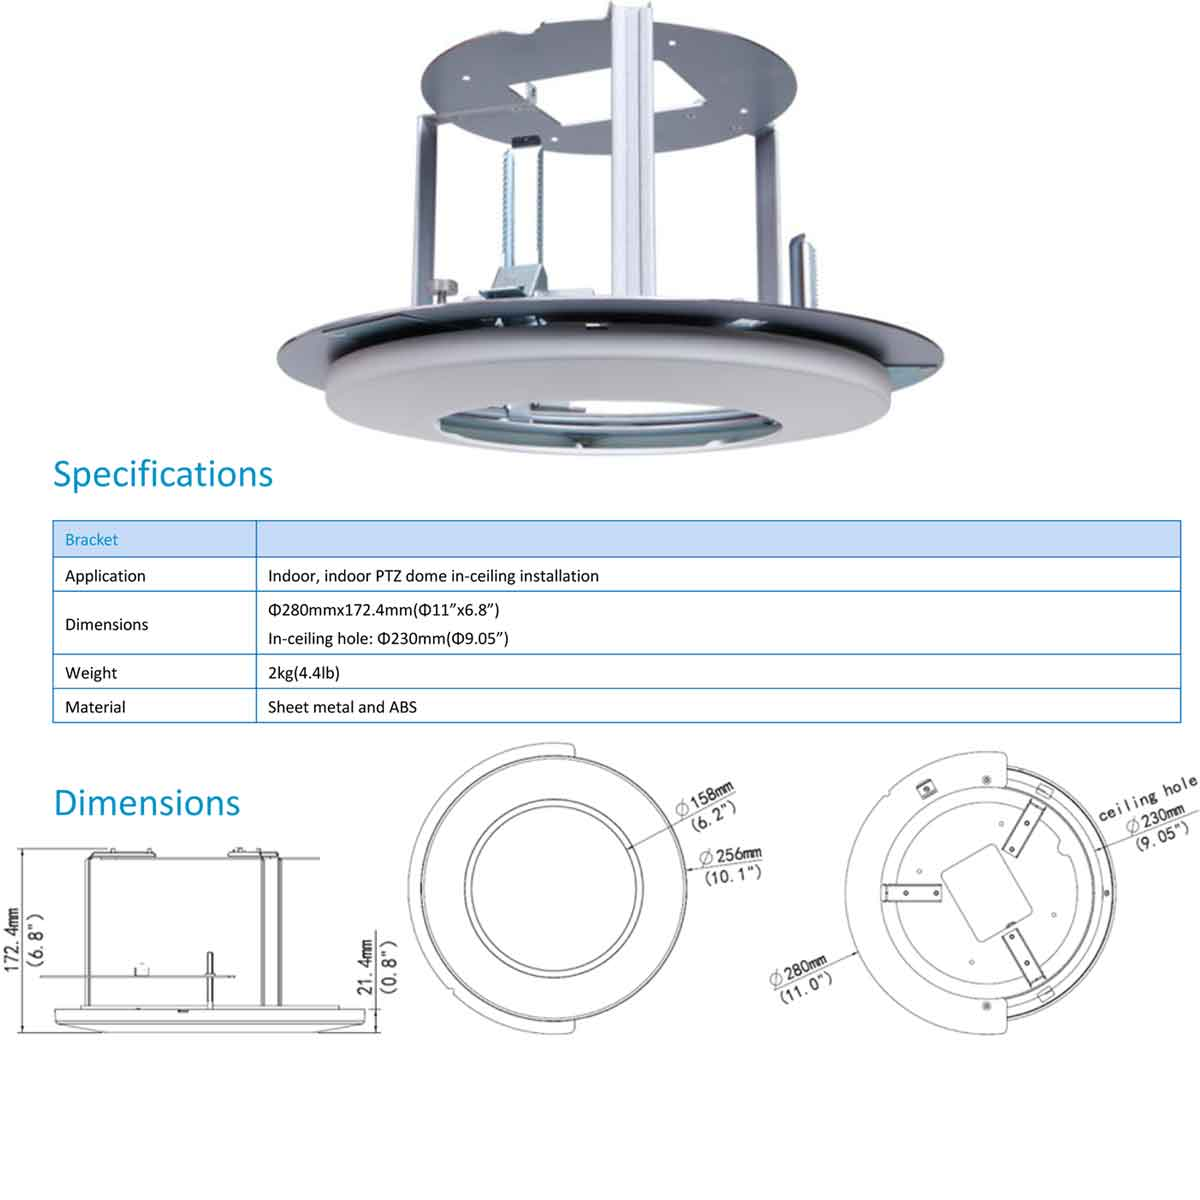 indy 22 specifications - Recessed Ceiling Mount